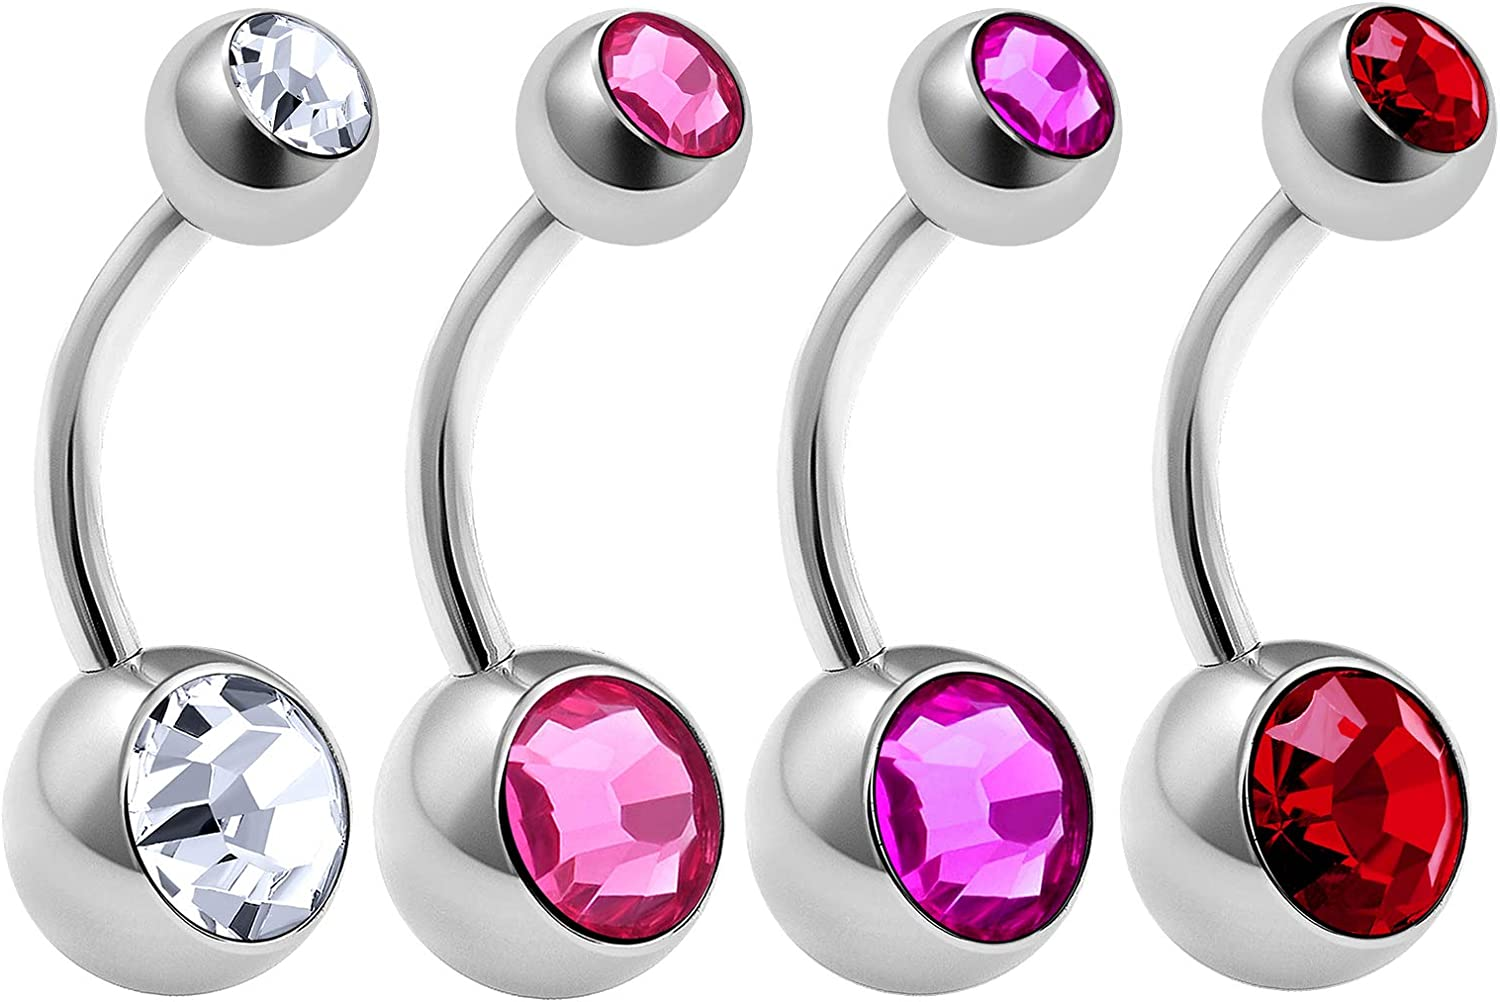 4Pcs Surgical Steel 14 gauge Belly Button Rings Piercing Jewelry Ear Lobe Earring navel 8mm 5mm Crystal More Choices